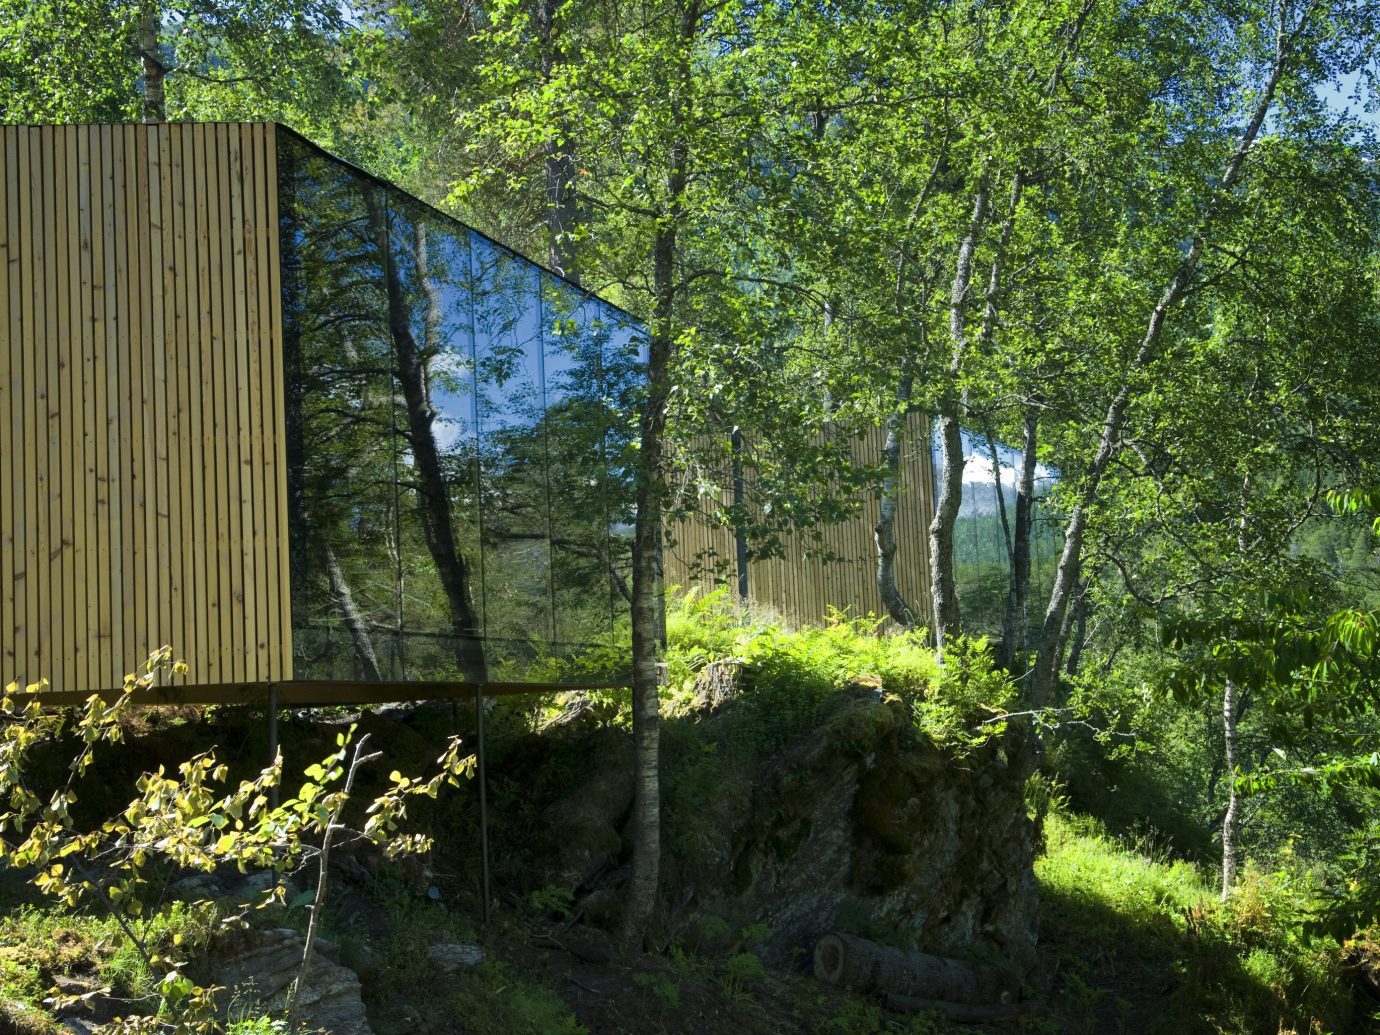 Design Hotels tree outdoor Nature vegetation nature reserve house Architecture building leaf biome plant Forest sunlight woodland grass real estate landscape outdoor structure facade Jungle cottage grass family Garden bushes lush wooded surrounded